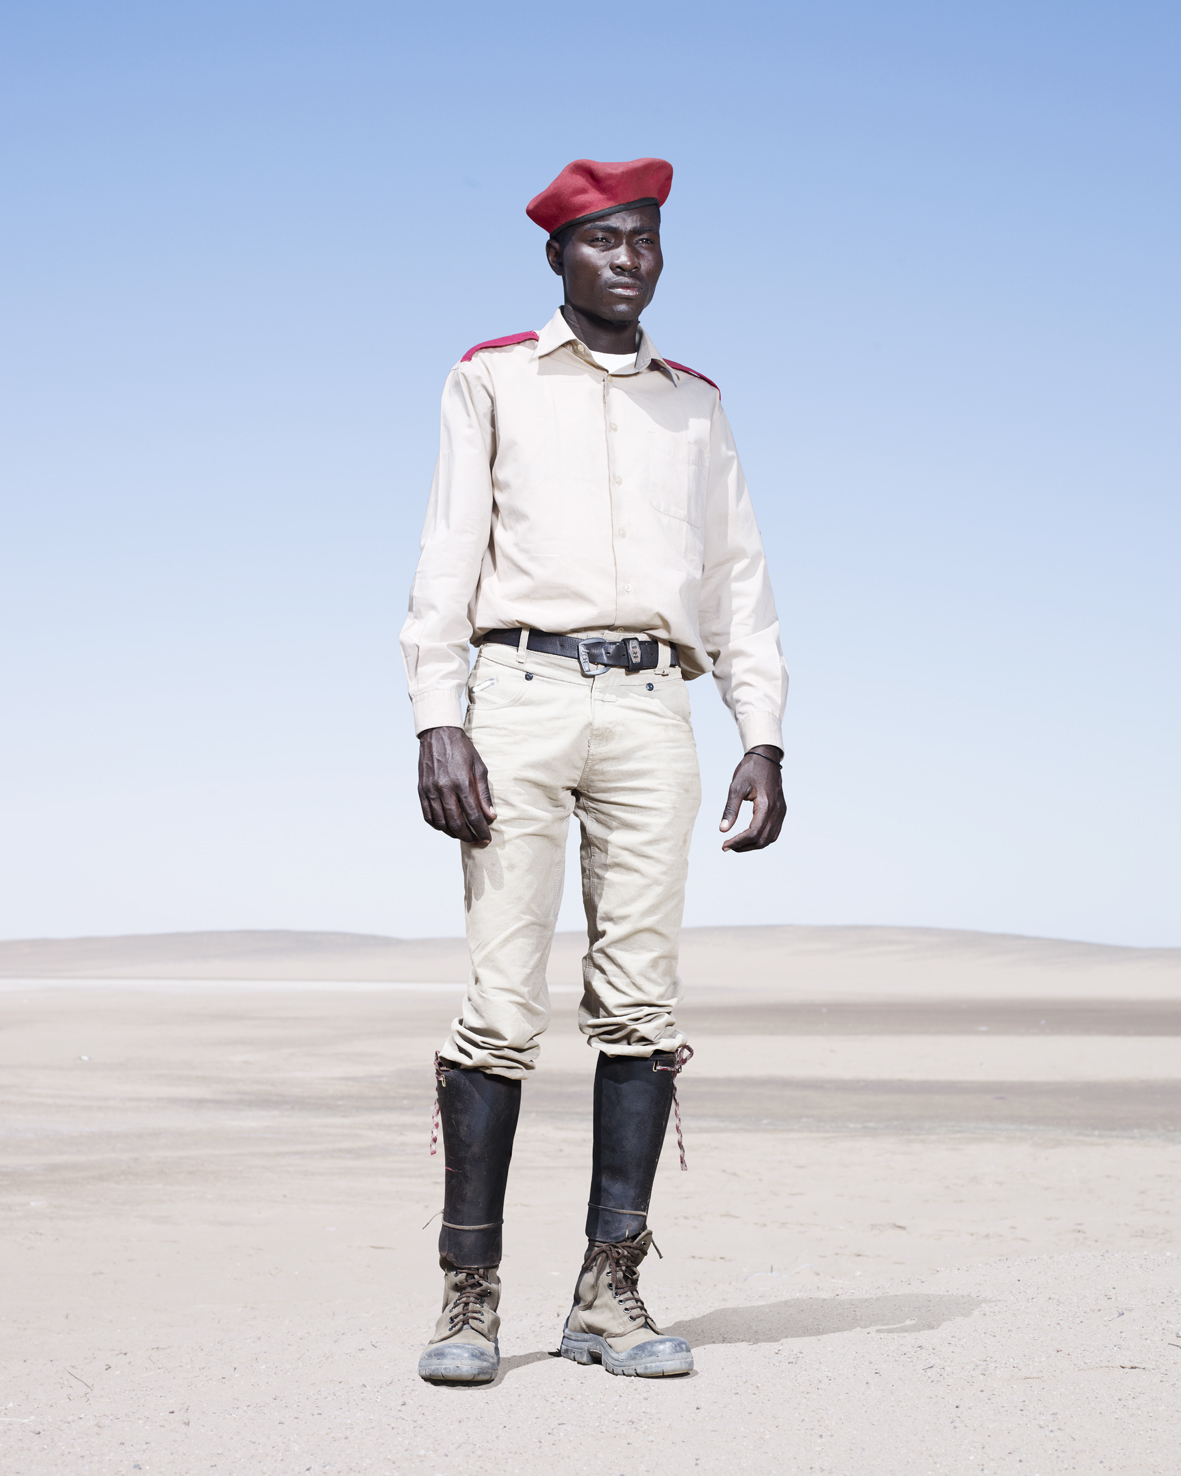 The red features of the uniform worn by this Otruppe cavalryman signal his membership in the Otjiserandu section.